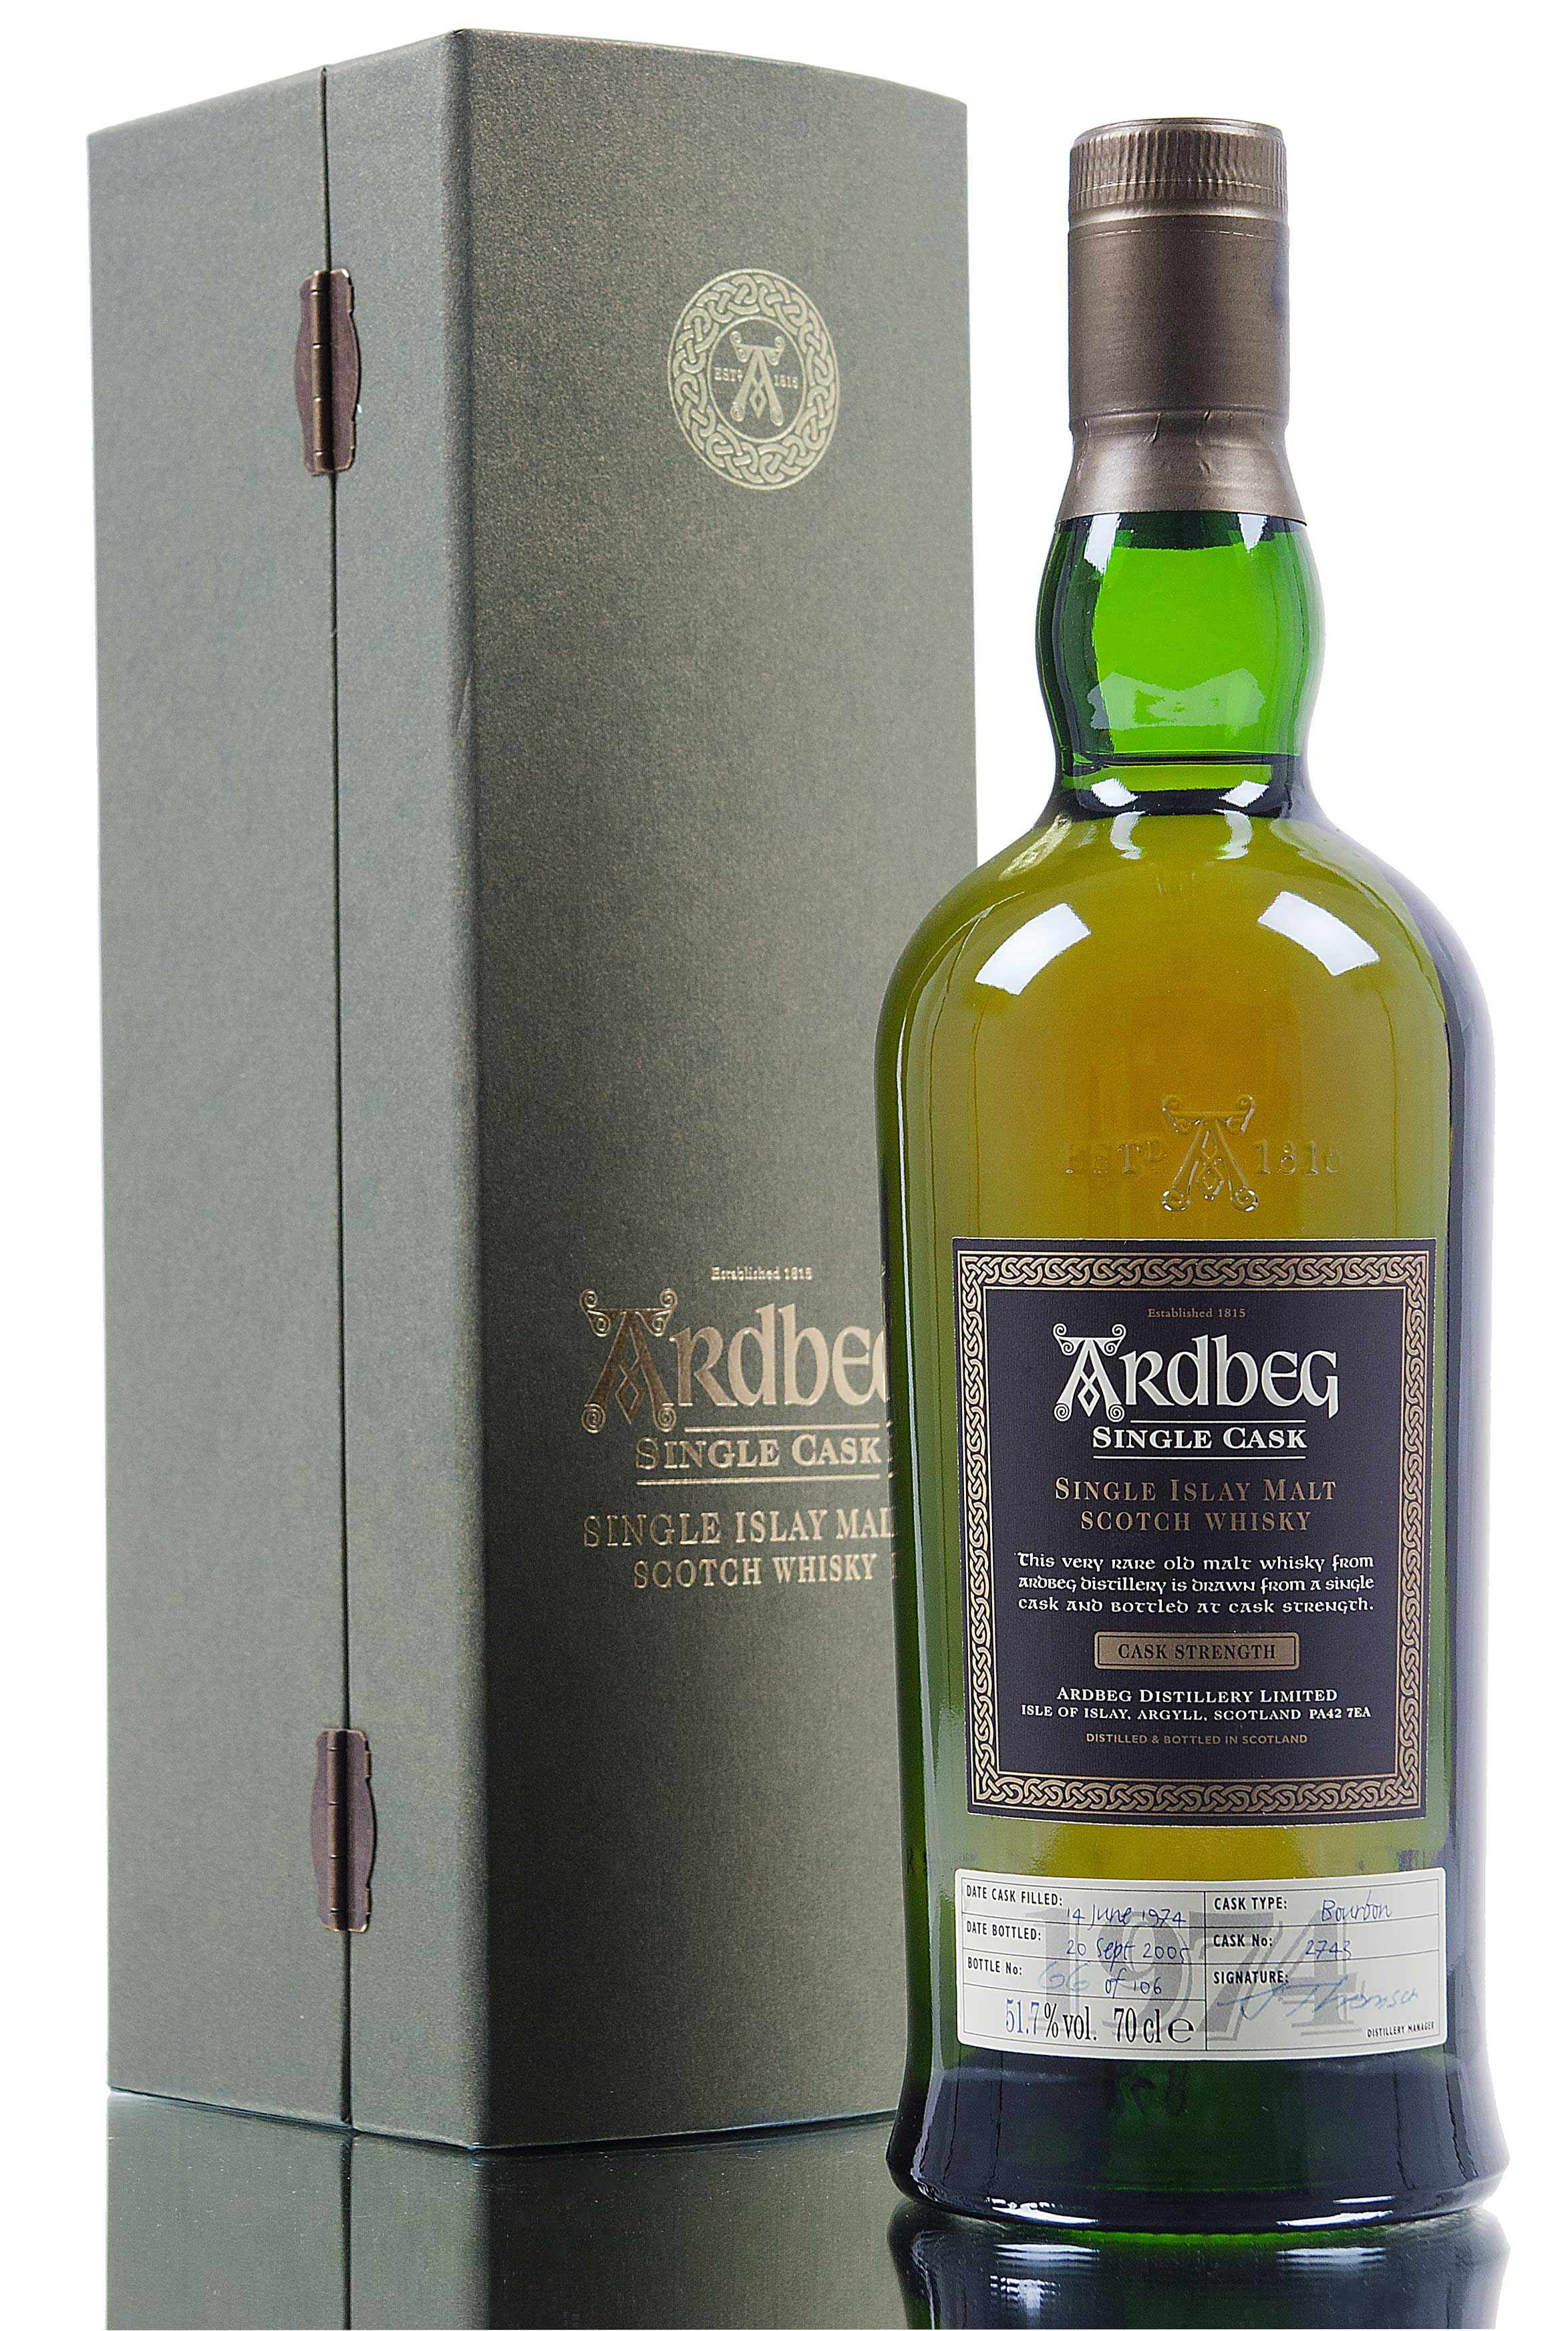 Ardbeg 1974 / Single Cask 2743 / 31 Year Old